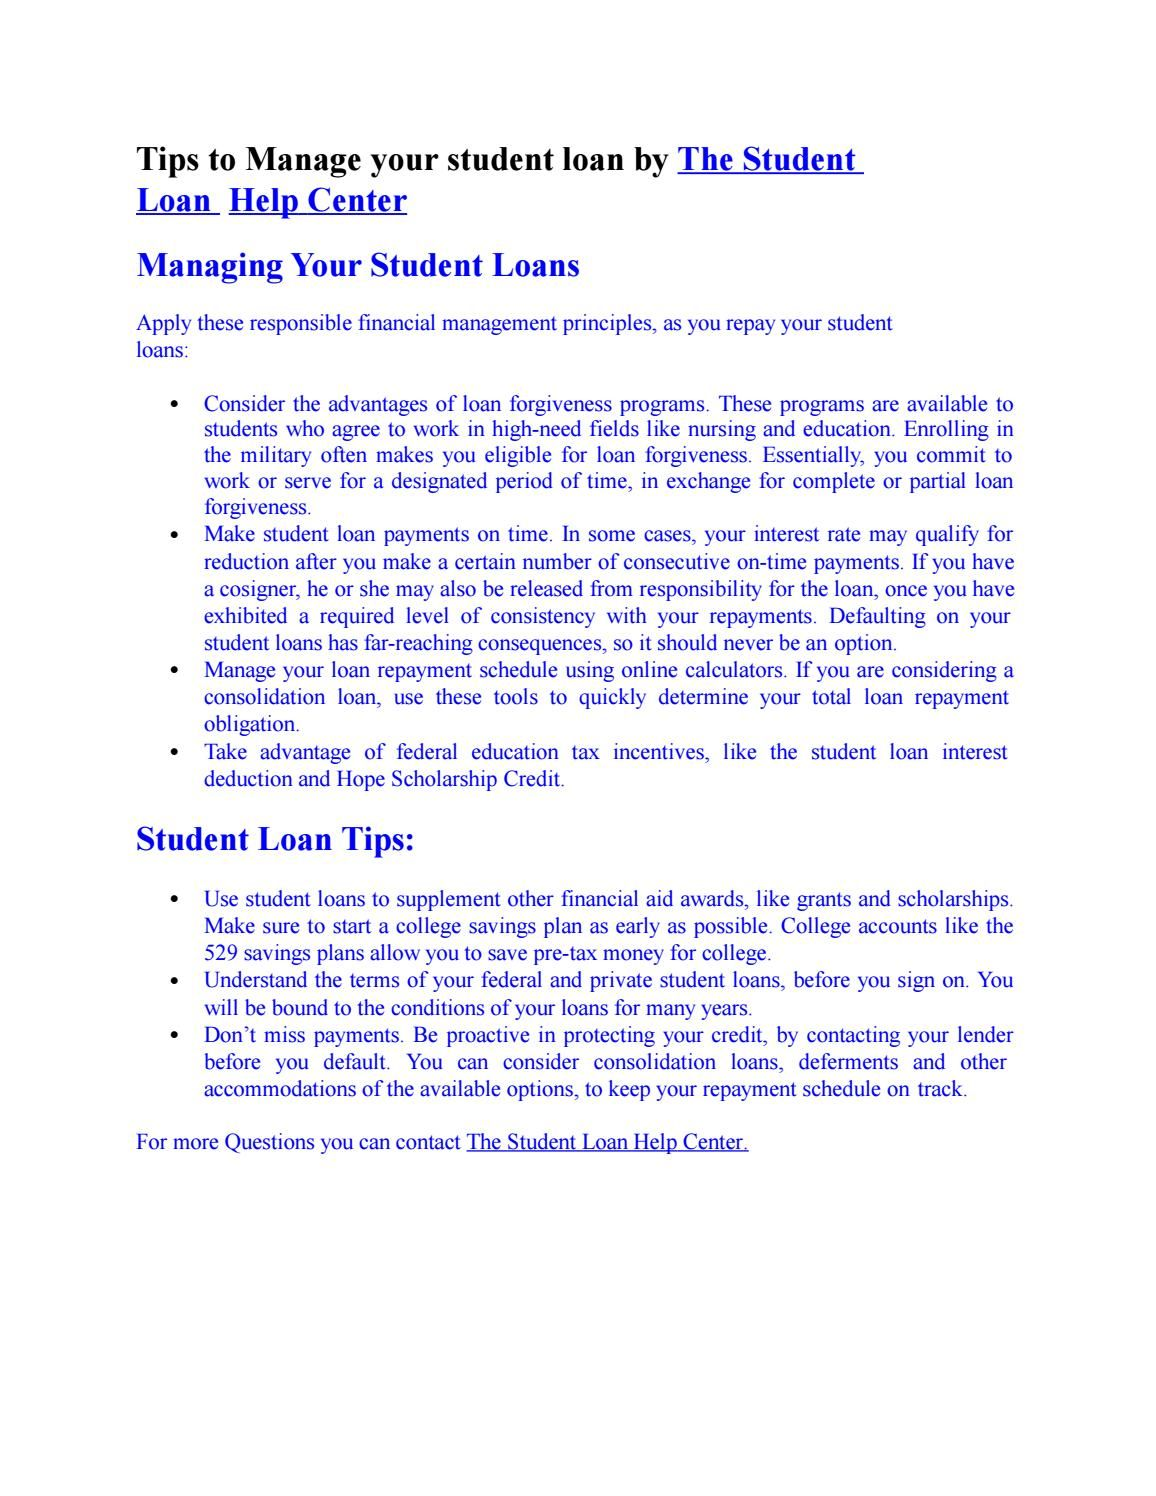 the student loan help center (thestudentloan) on pinterest